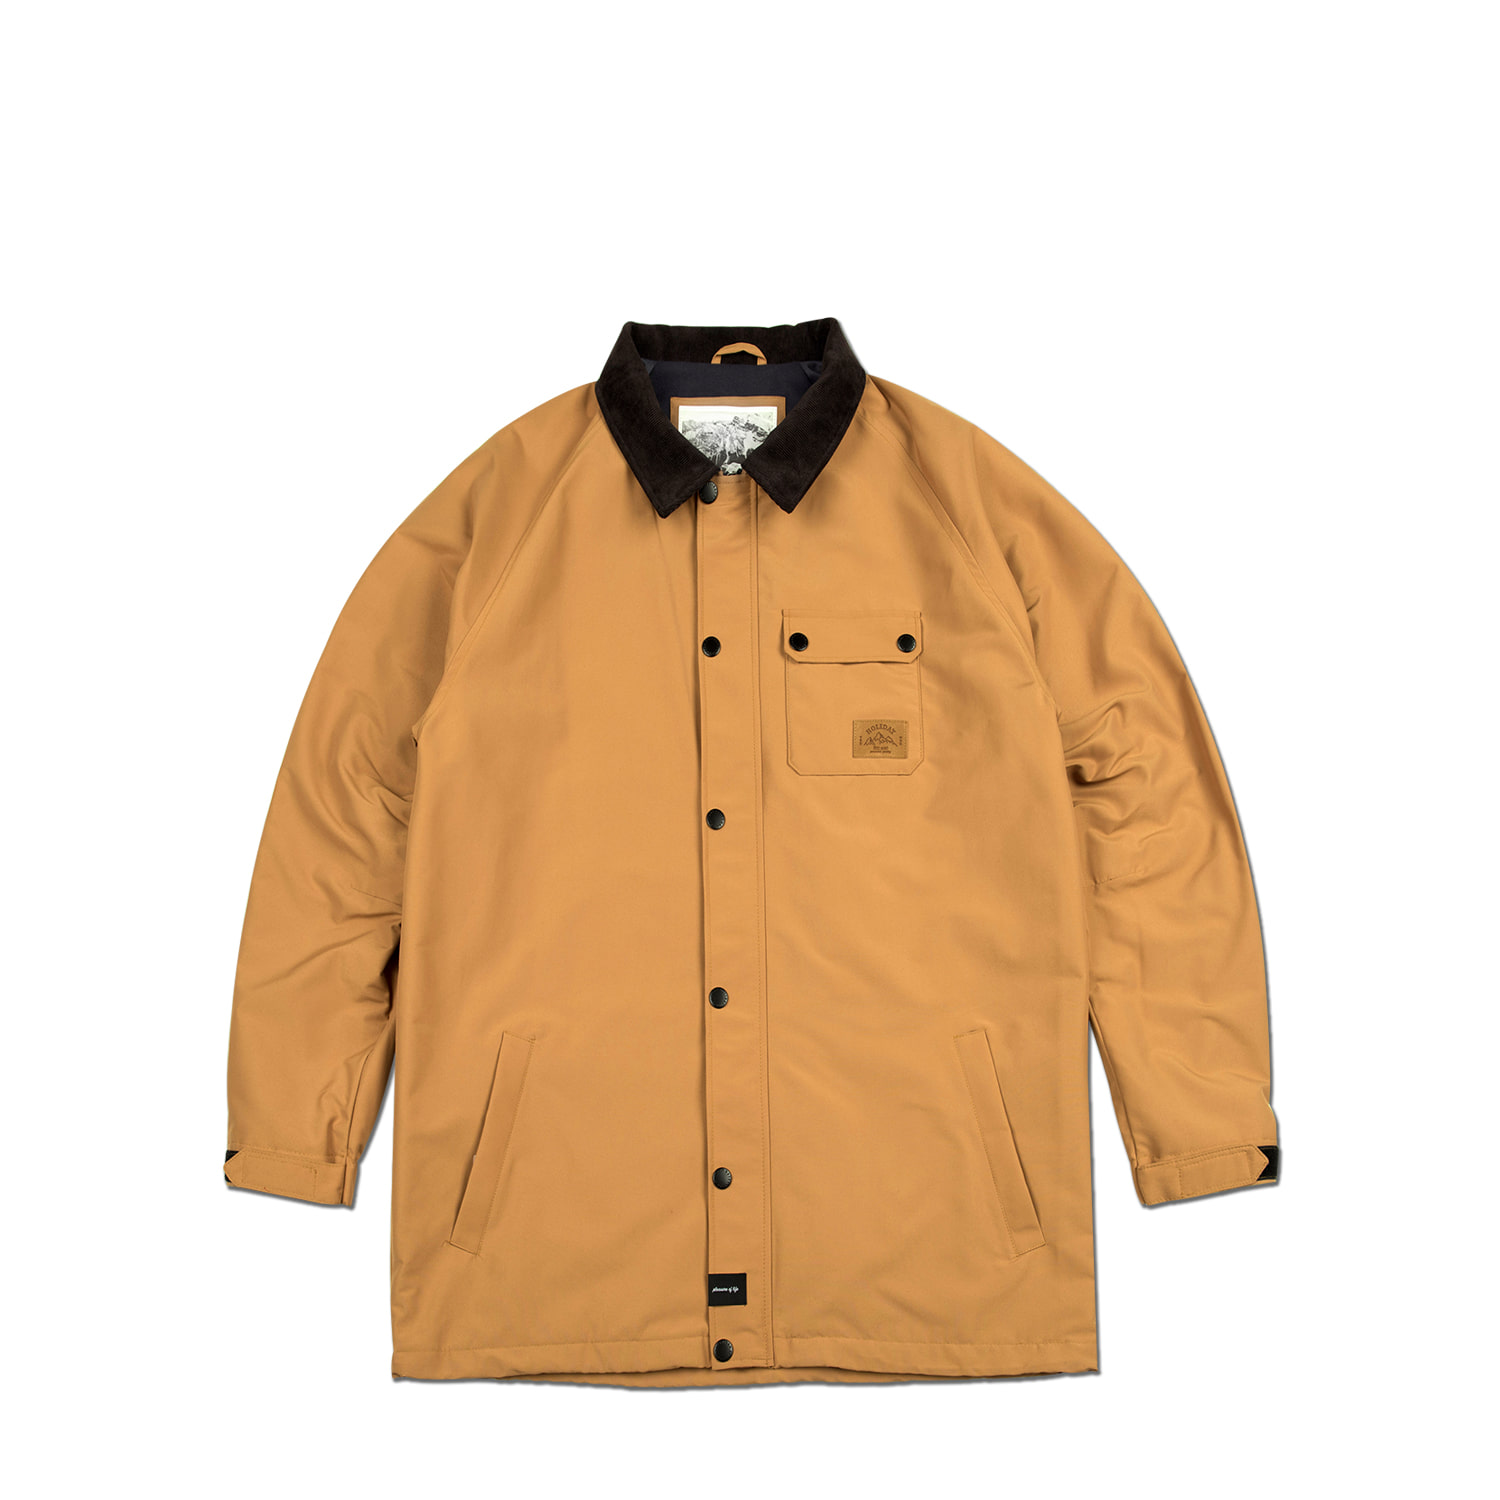 ALL DAY WORK jacket - beige